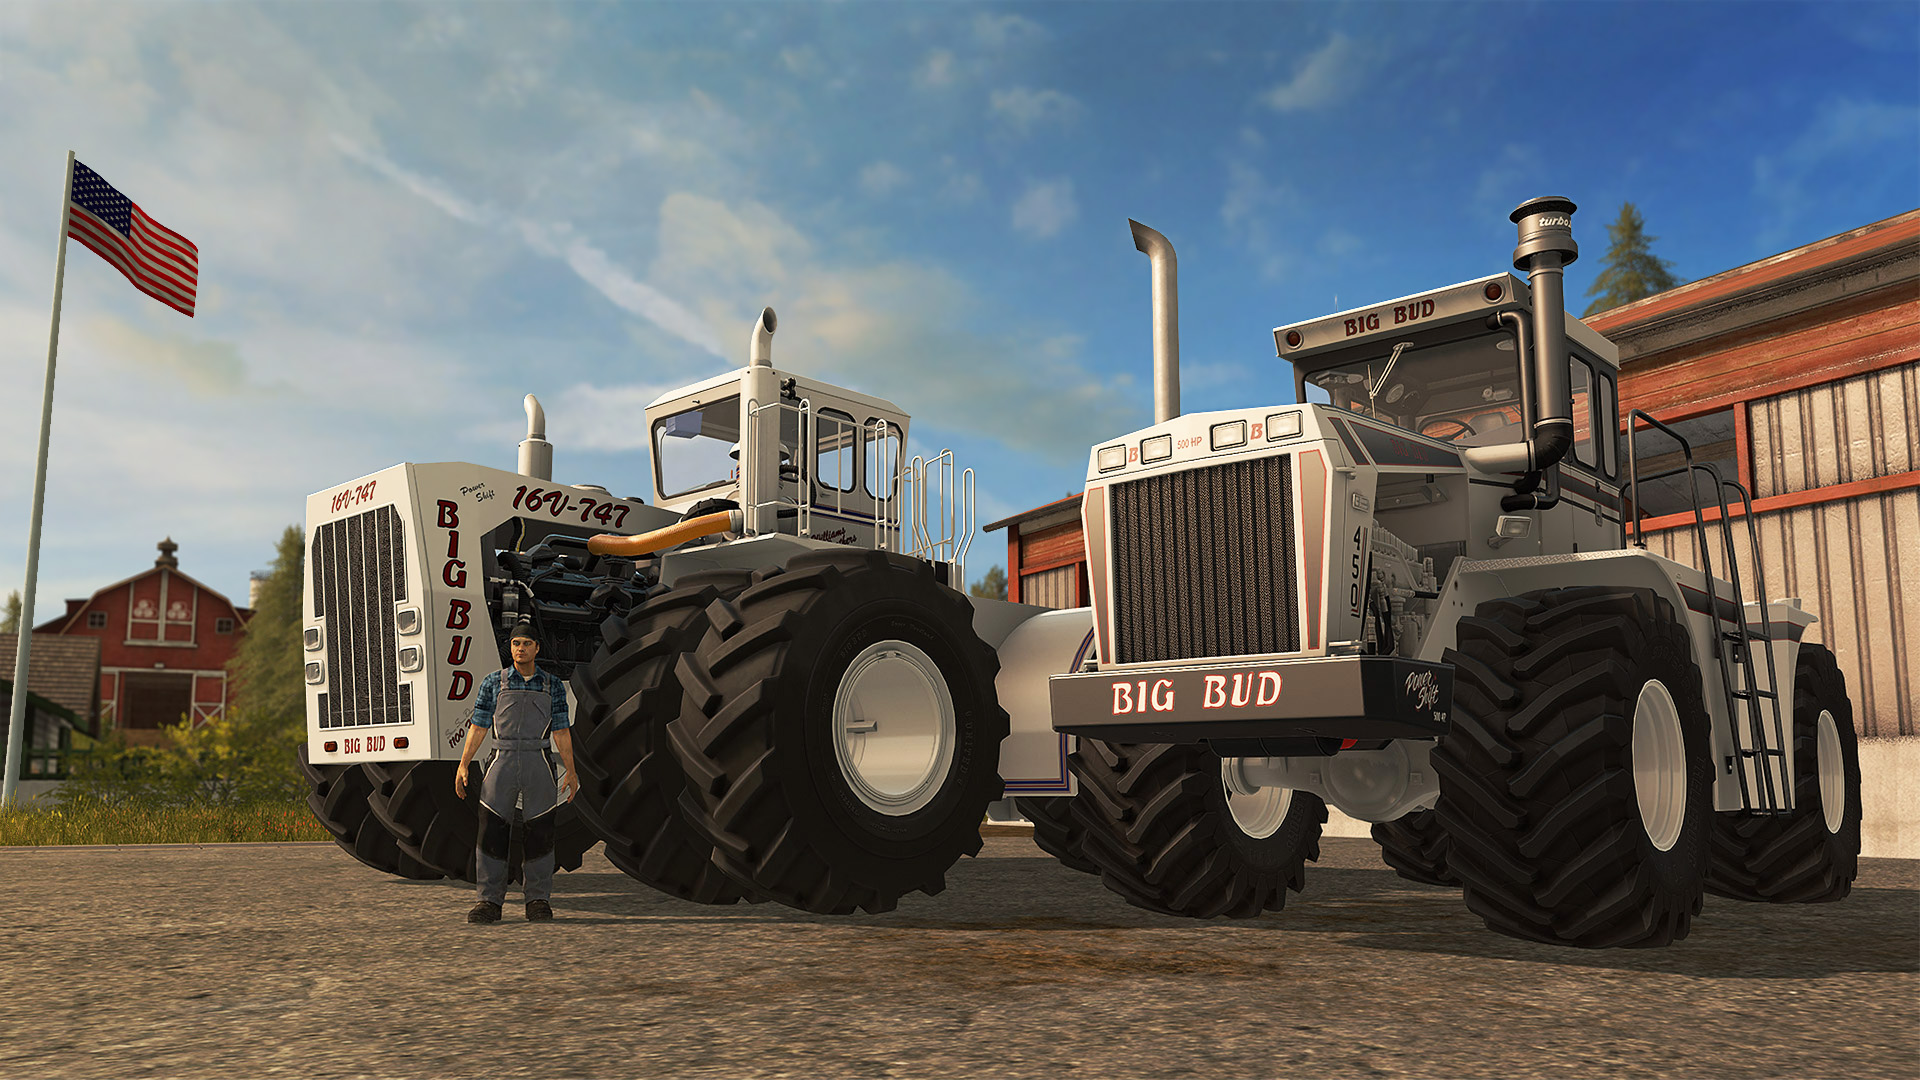 farming simulator 17 big bud free download ocean of games. Black Bedroom Furniture Sets. Home Design Ideas